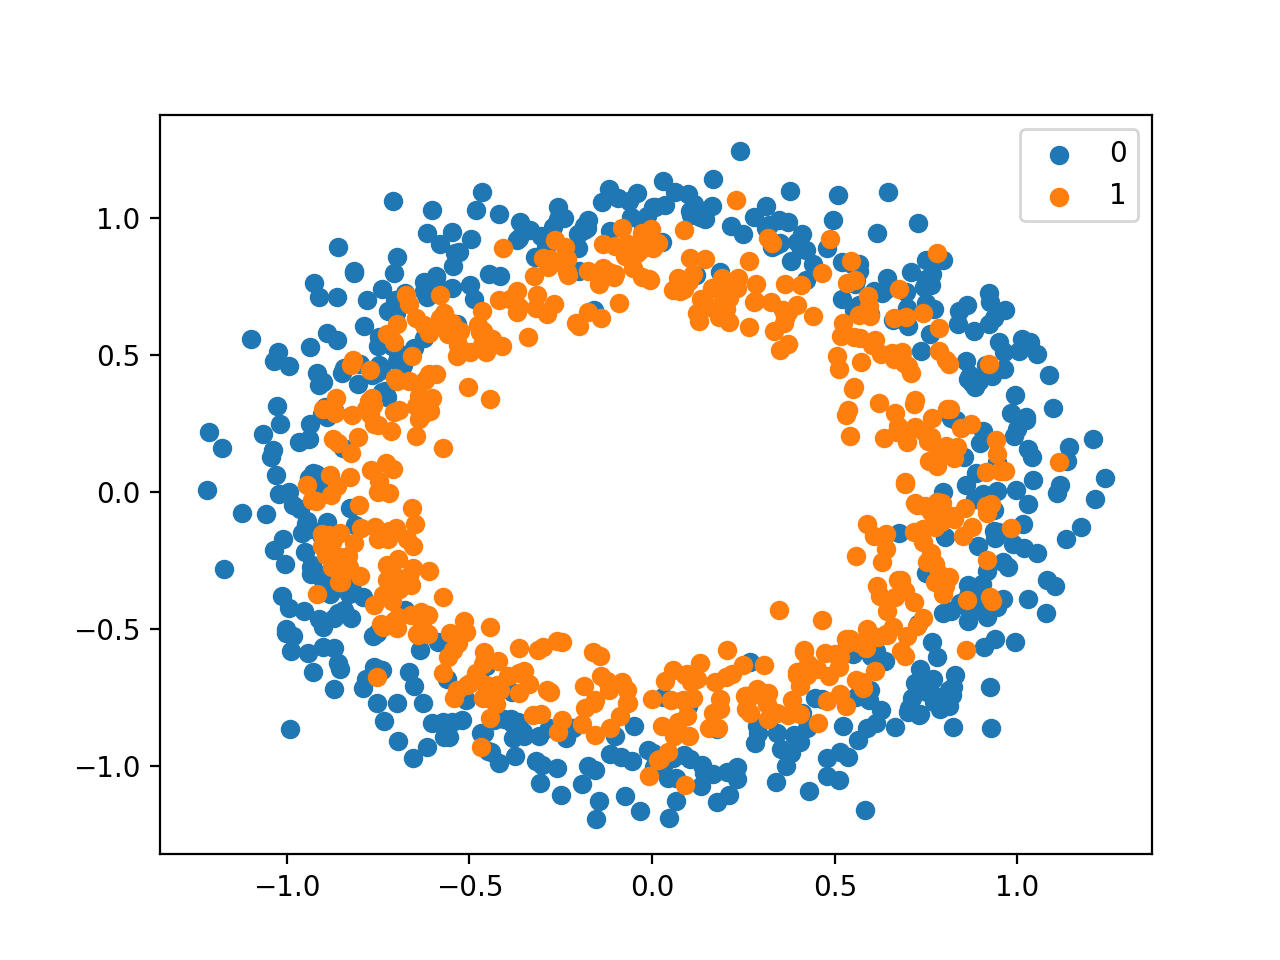 Scatter Plot of Circles Dataset With Points Colored By Class Value